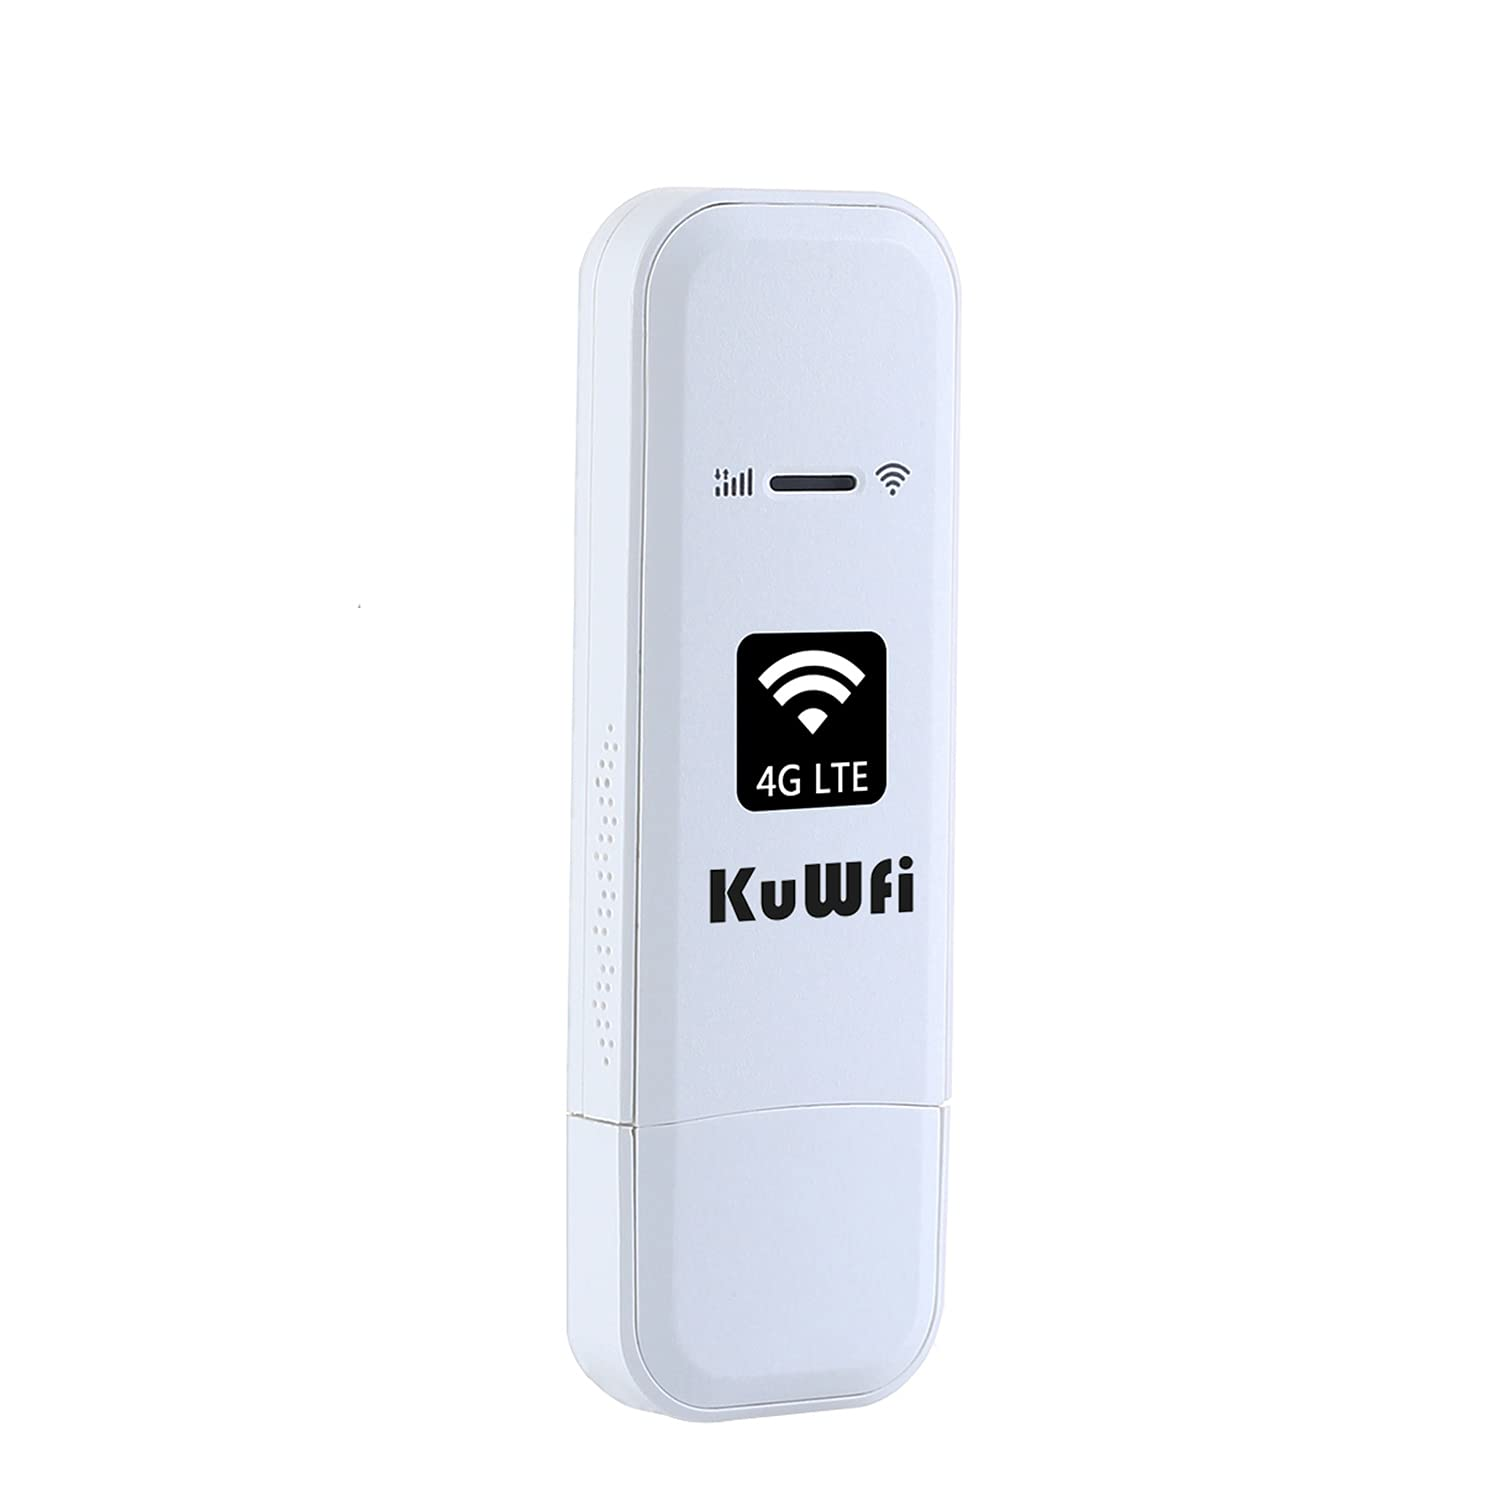 KuWFi 4G LTE USB WiFi Modem Mobile Internet Devices with SIM Card Slot High Speed Portable Travel Hotspot Mini Router